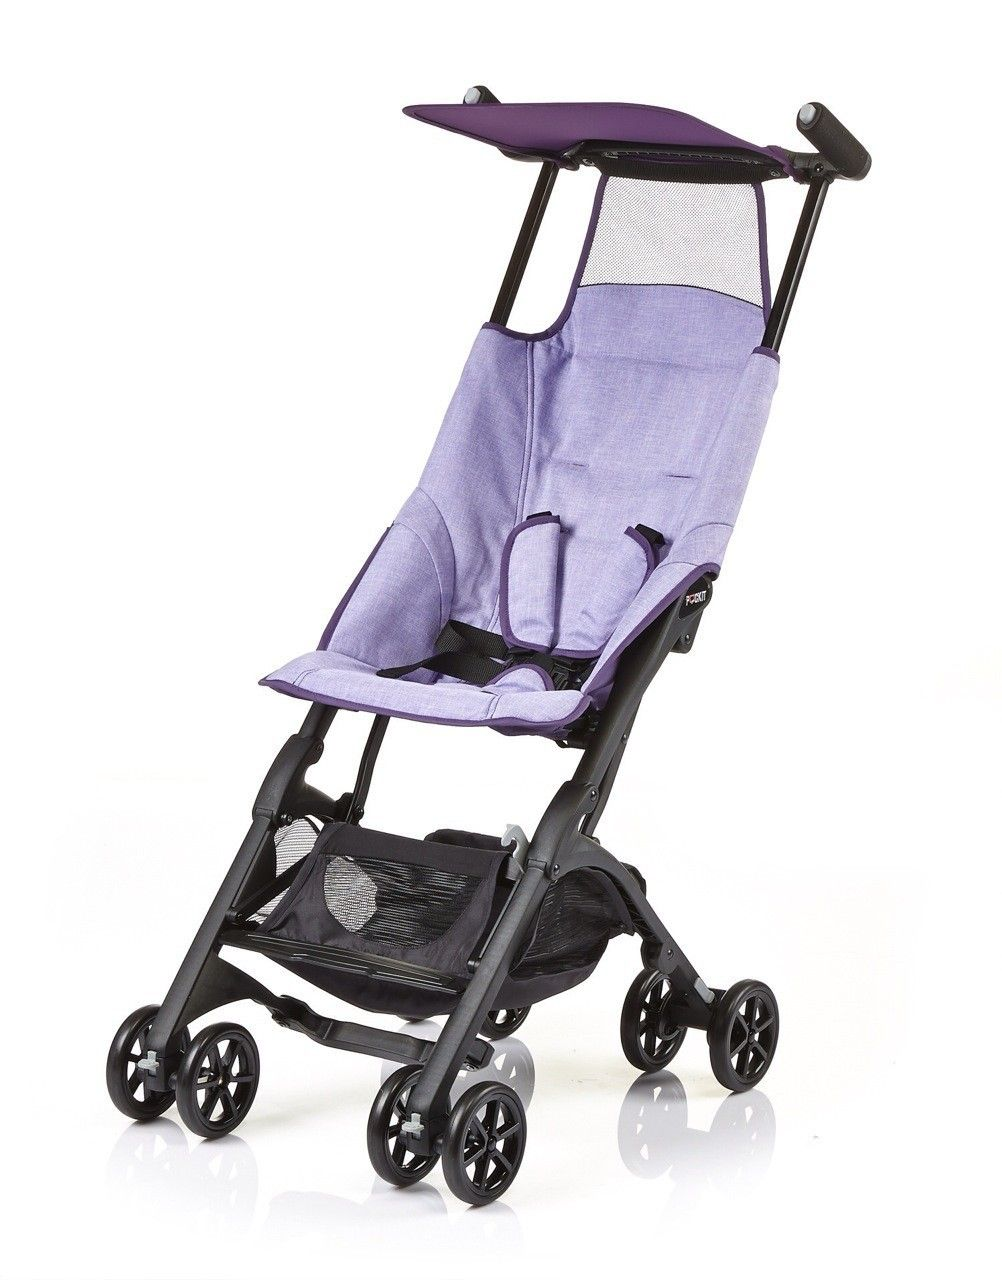 Compact Pockit Stroller shown in Lilac New baby products